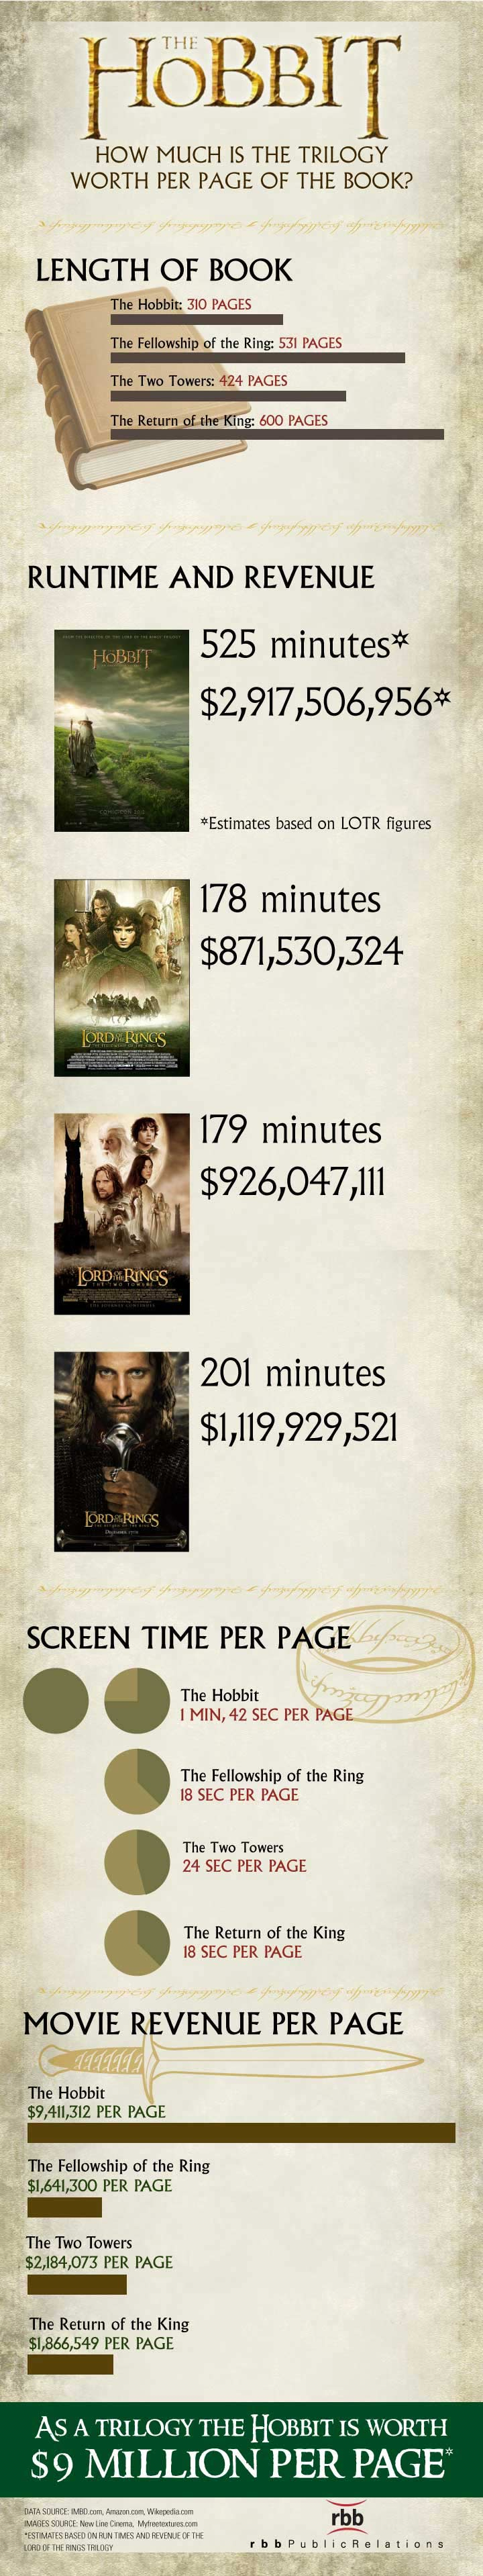 The hobbit how much is the trilogy worth per page of the book